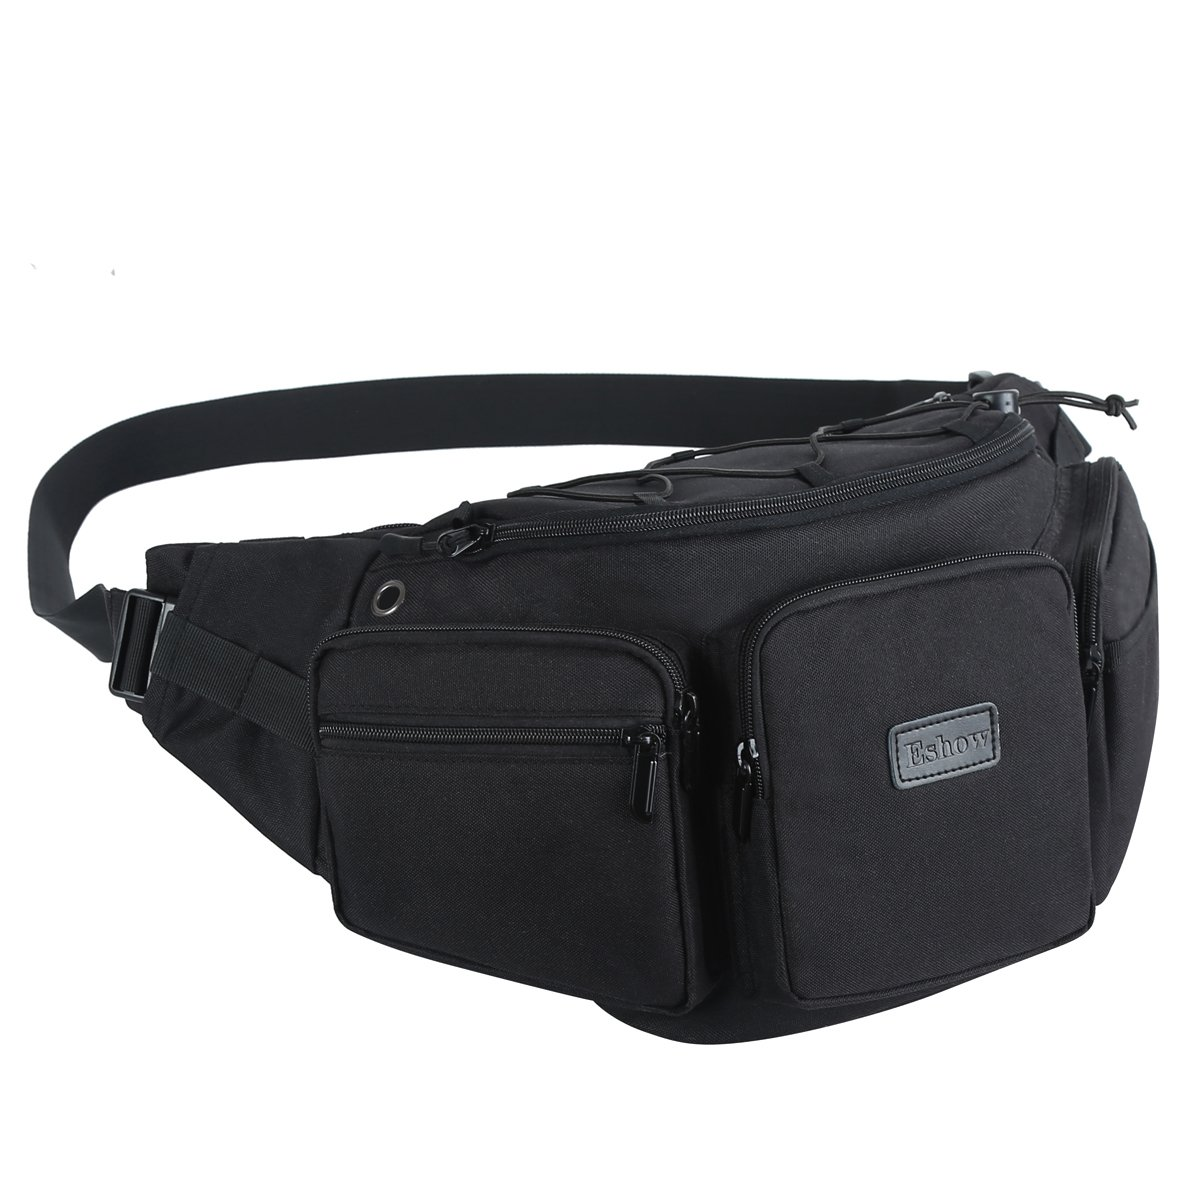 6912ce35aecf Eshow Outdoor Tactical Military Large Waist Fanny Pack for Men ...